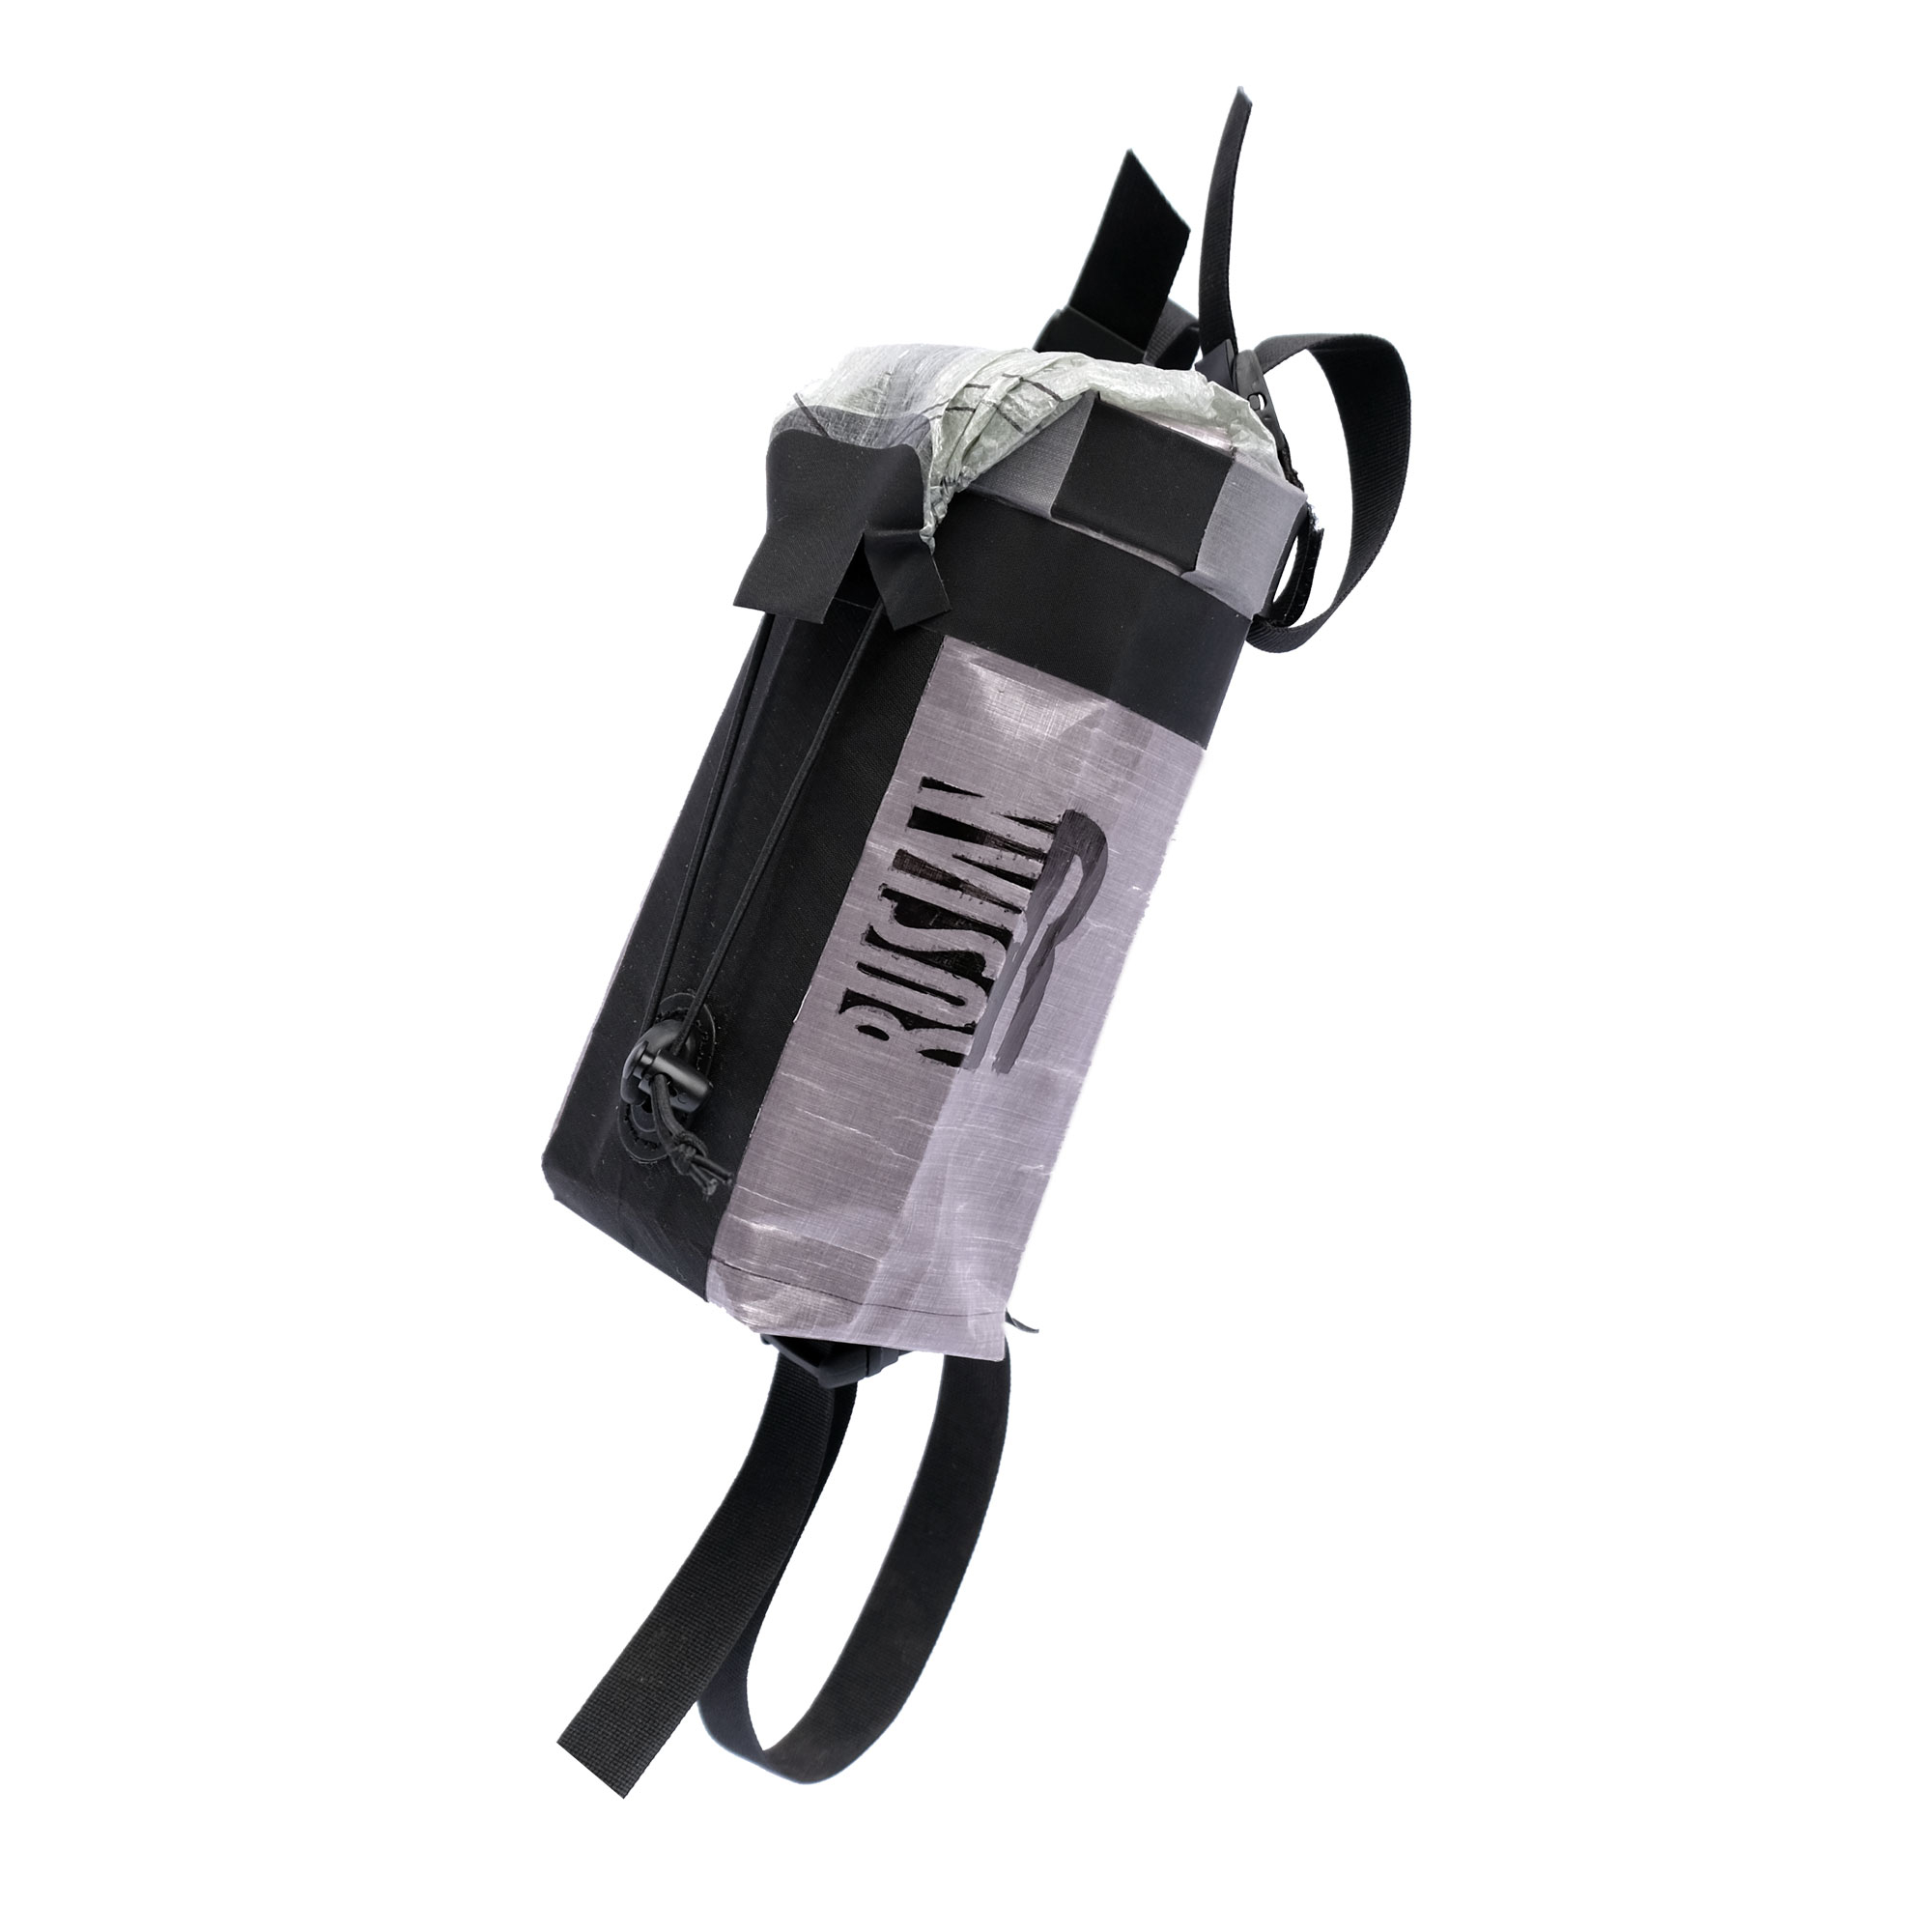 Dyneema - Food bag, snack bag o bottle holder da manubrio cilindrica per bikepacking waterproof ultralight